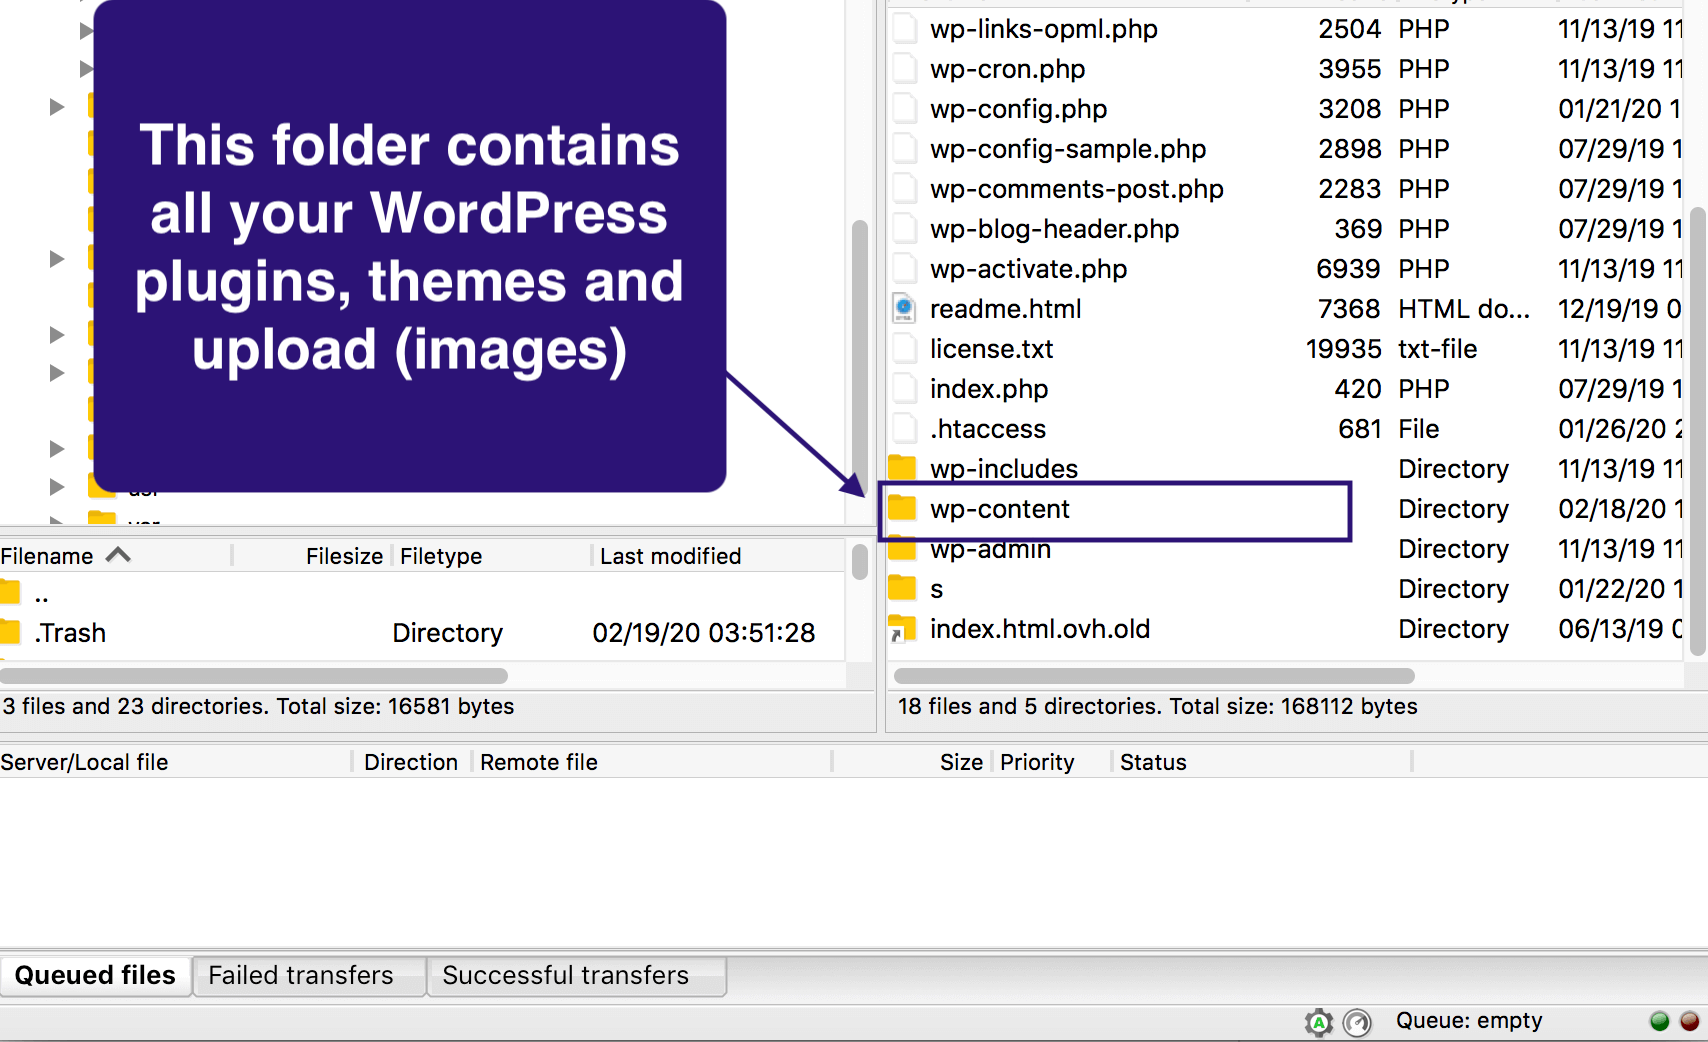 opening the wp-content folder